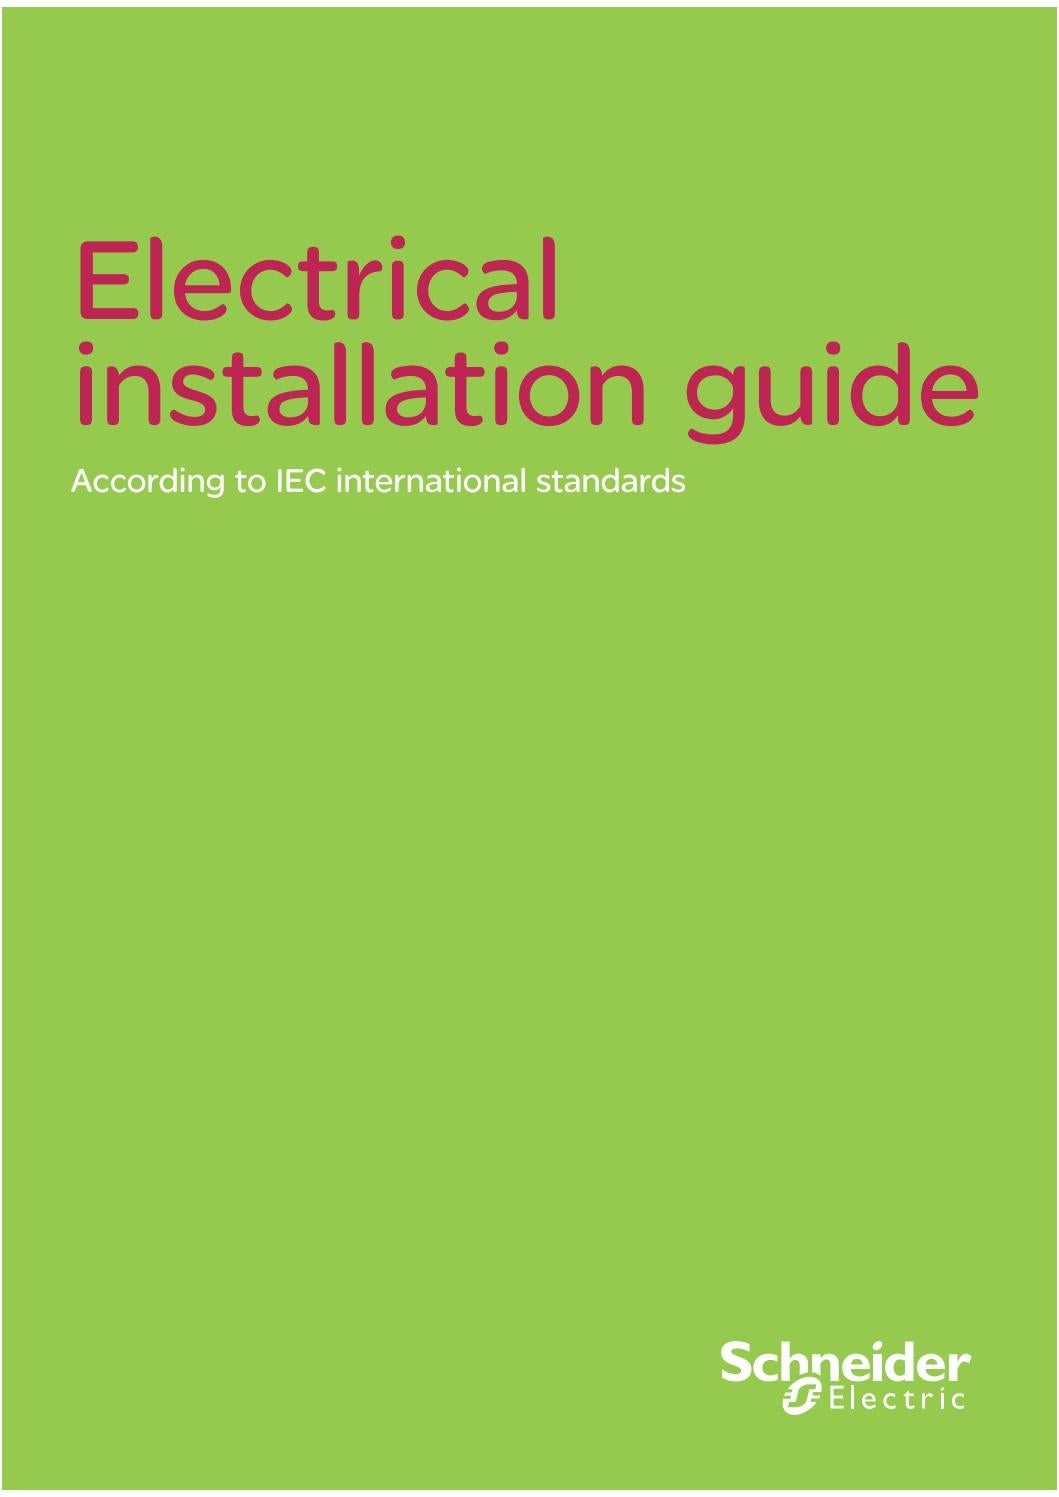 Electrical Installation Guide 2015 P1 By Modiconlv Issuu Single Coil Pickup Wiring Diagram As Well Arc Fault Circuit Breaker